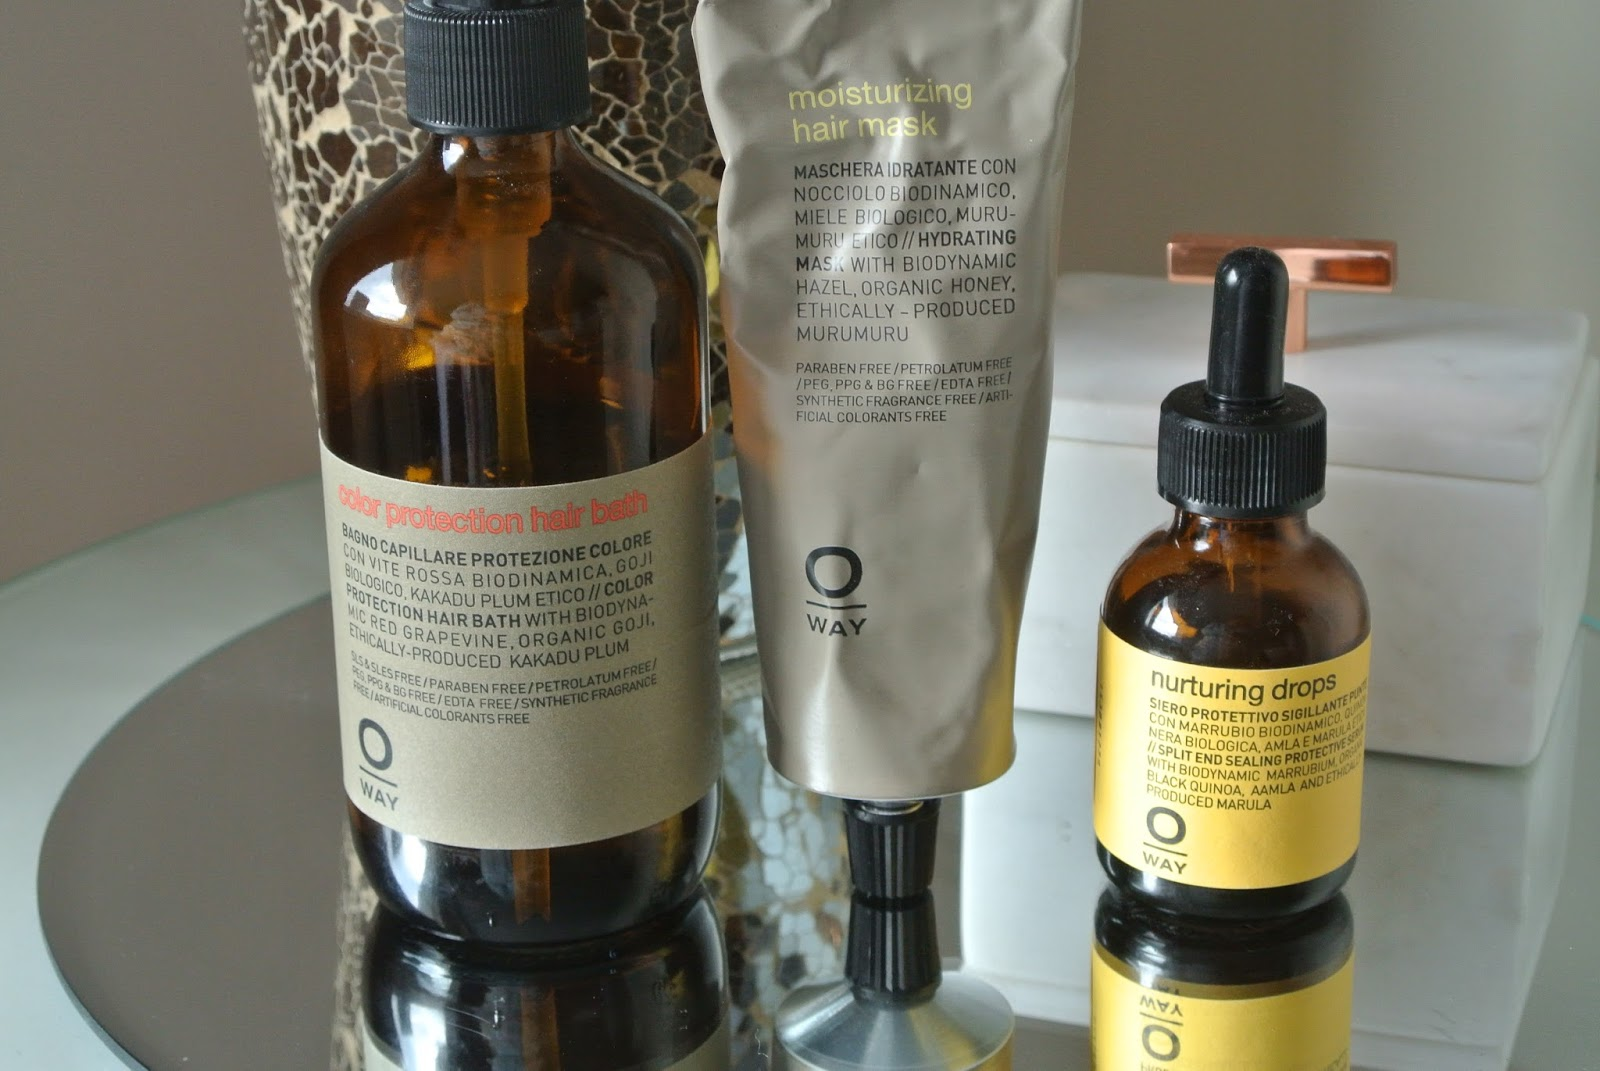 O Way Hair Care Products